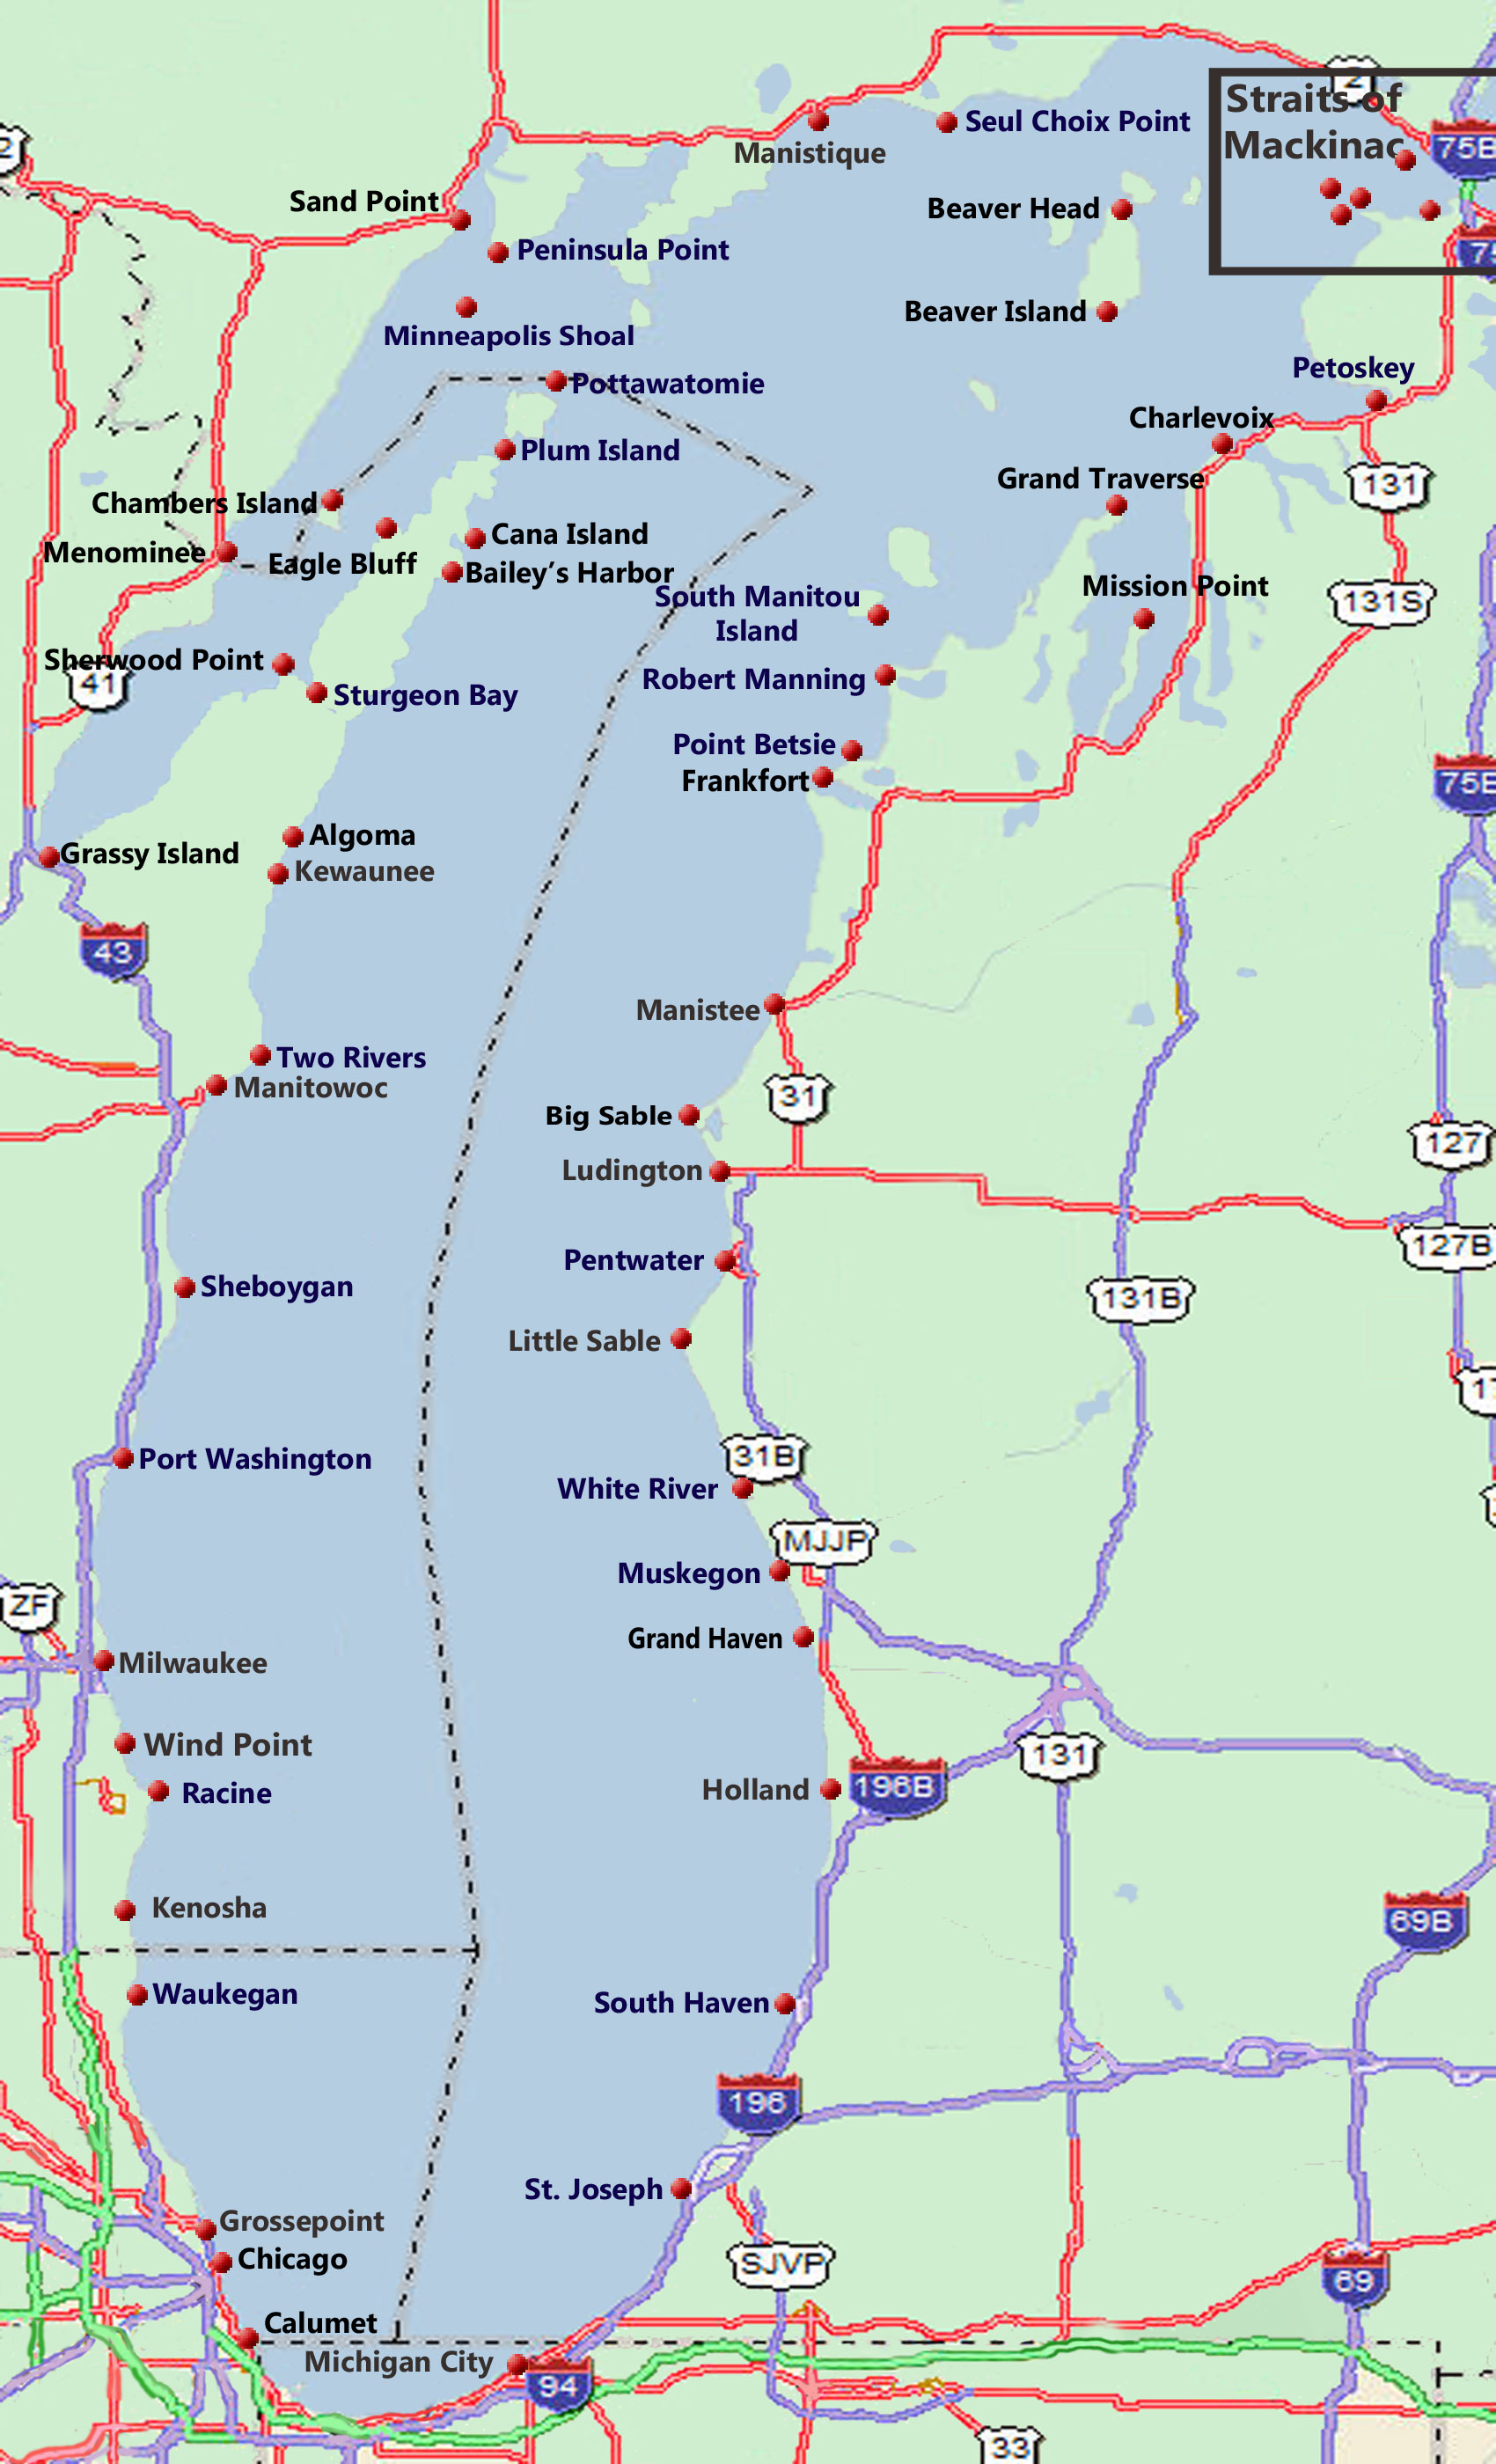 LAKE MICHIGAN CHICAGO BOAT RENTAL Boat Rentals - Chicago map lake michigan